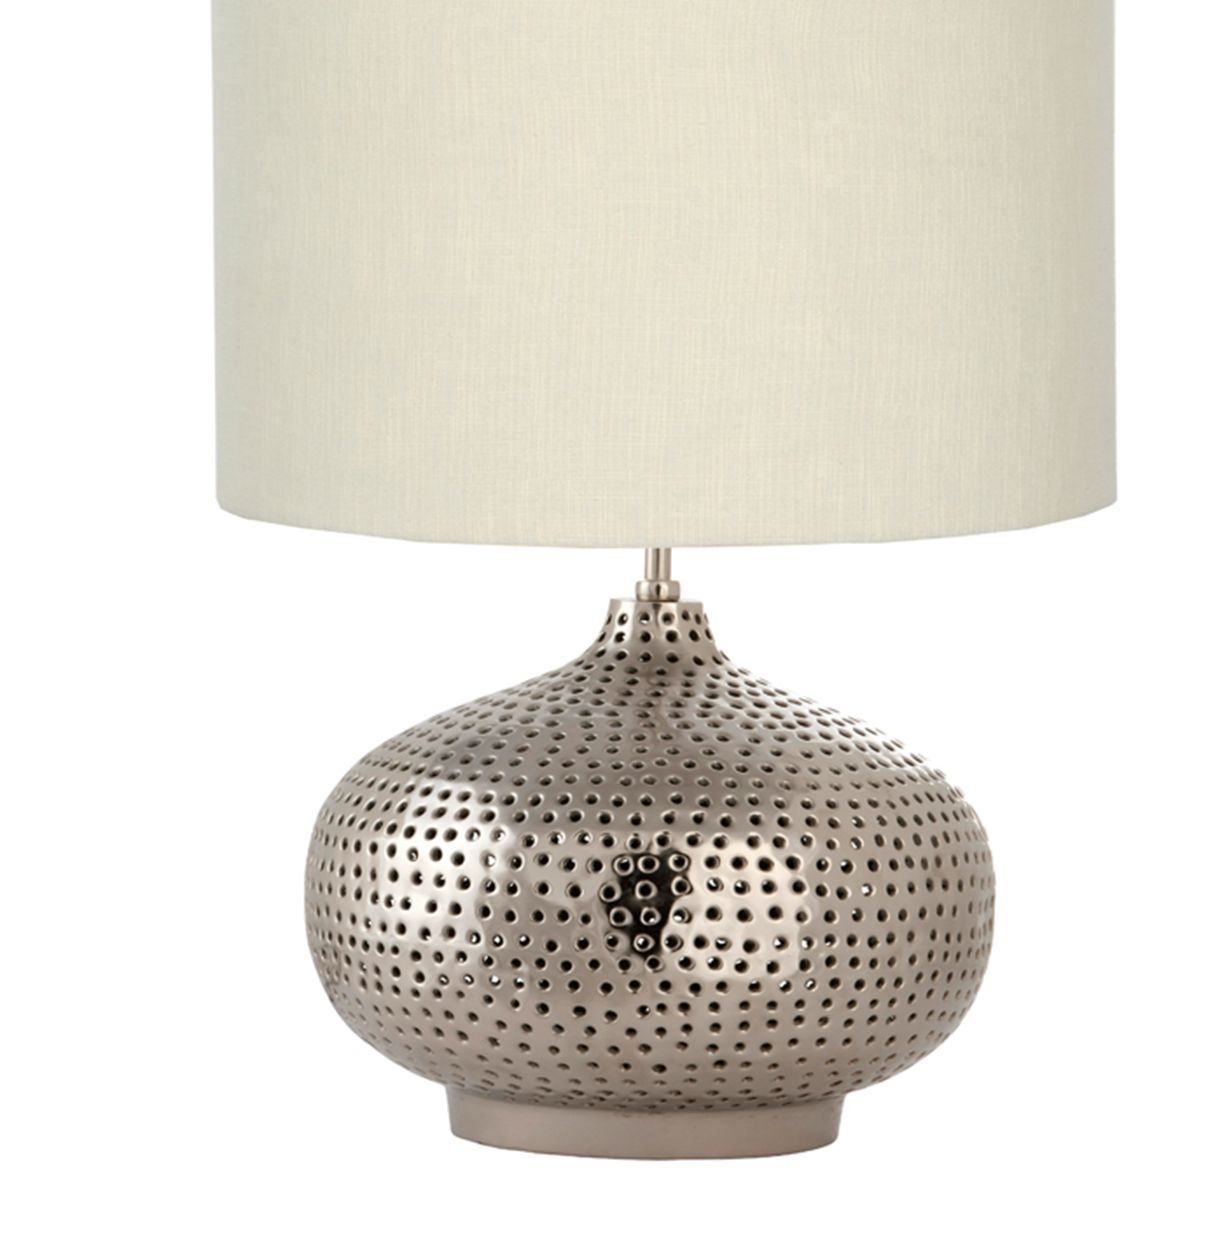 Moroccan style punched iron nickel oval table lamp http moroccan style punched iron nickel oval table lamp httpshabbystore aloadofball Gallery